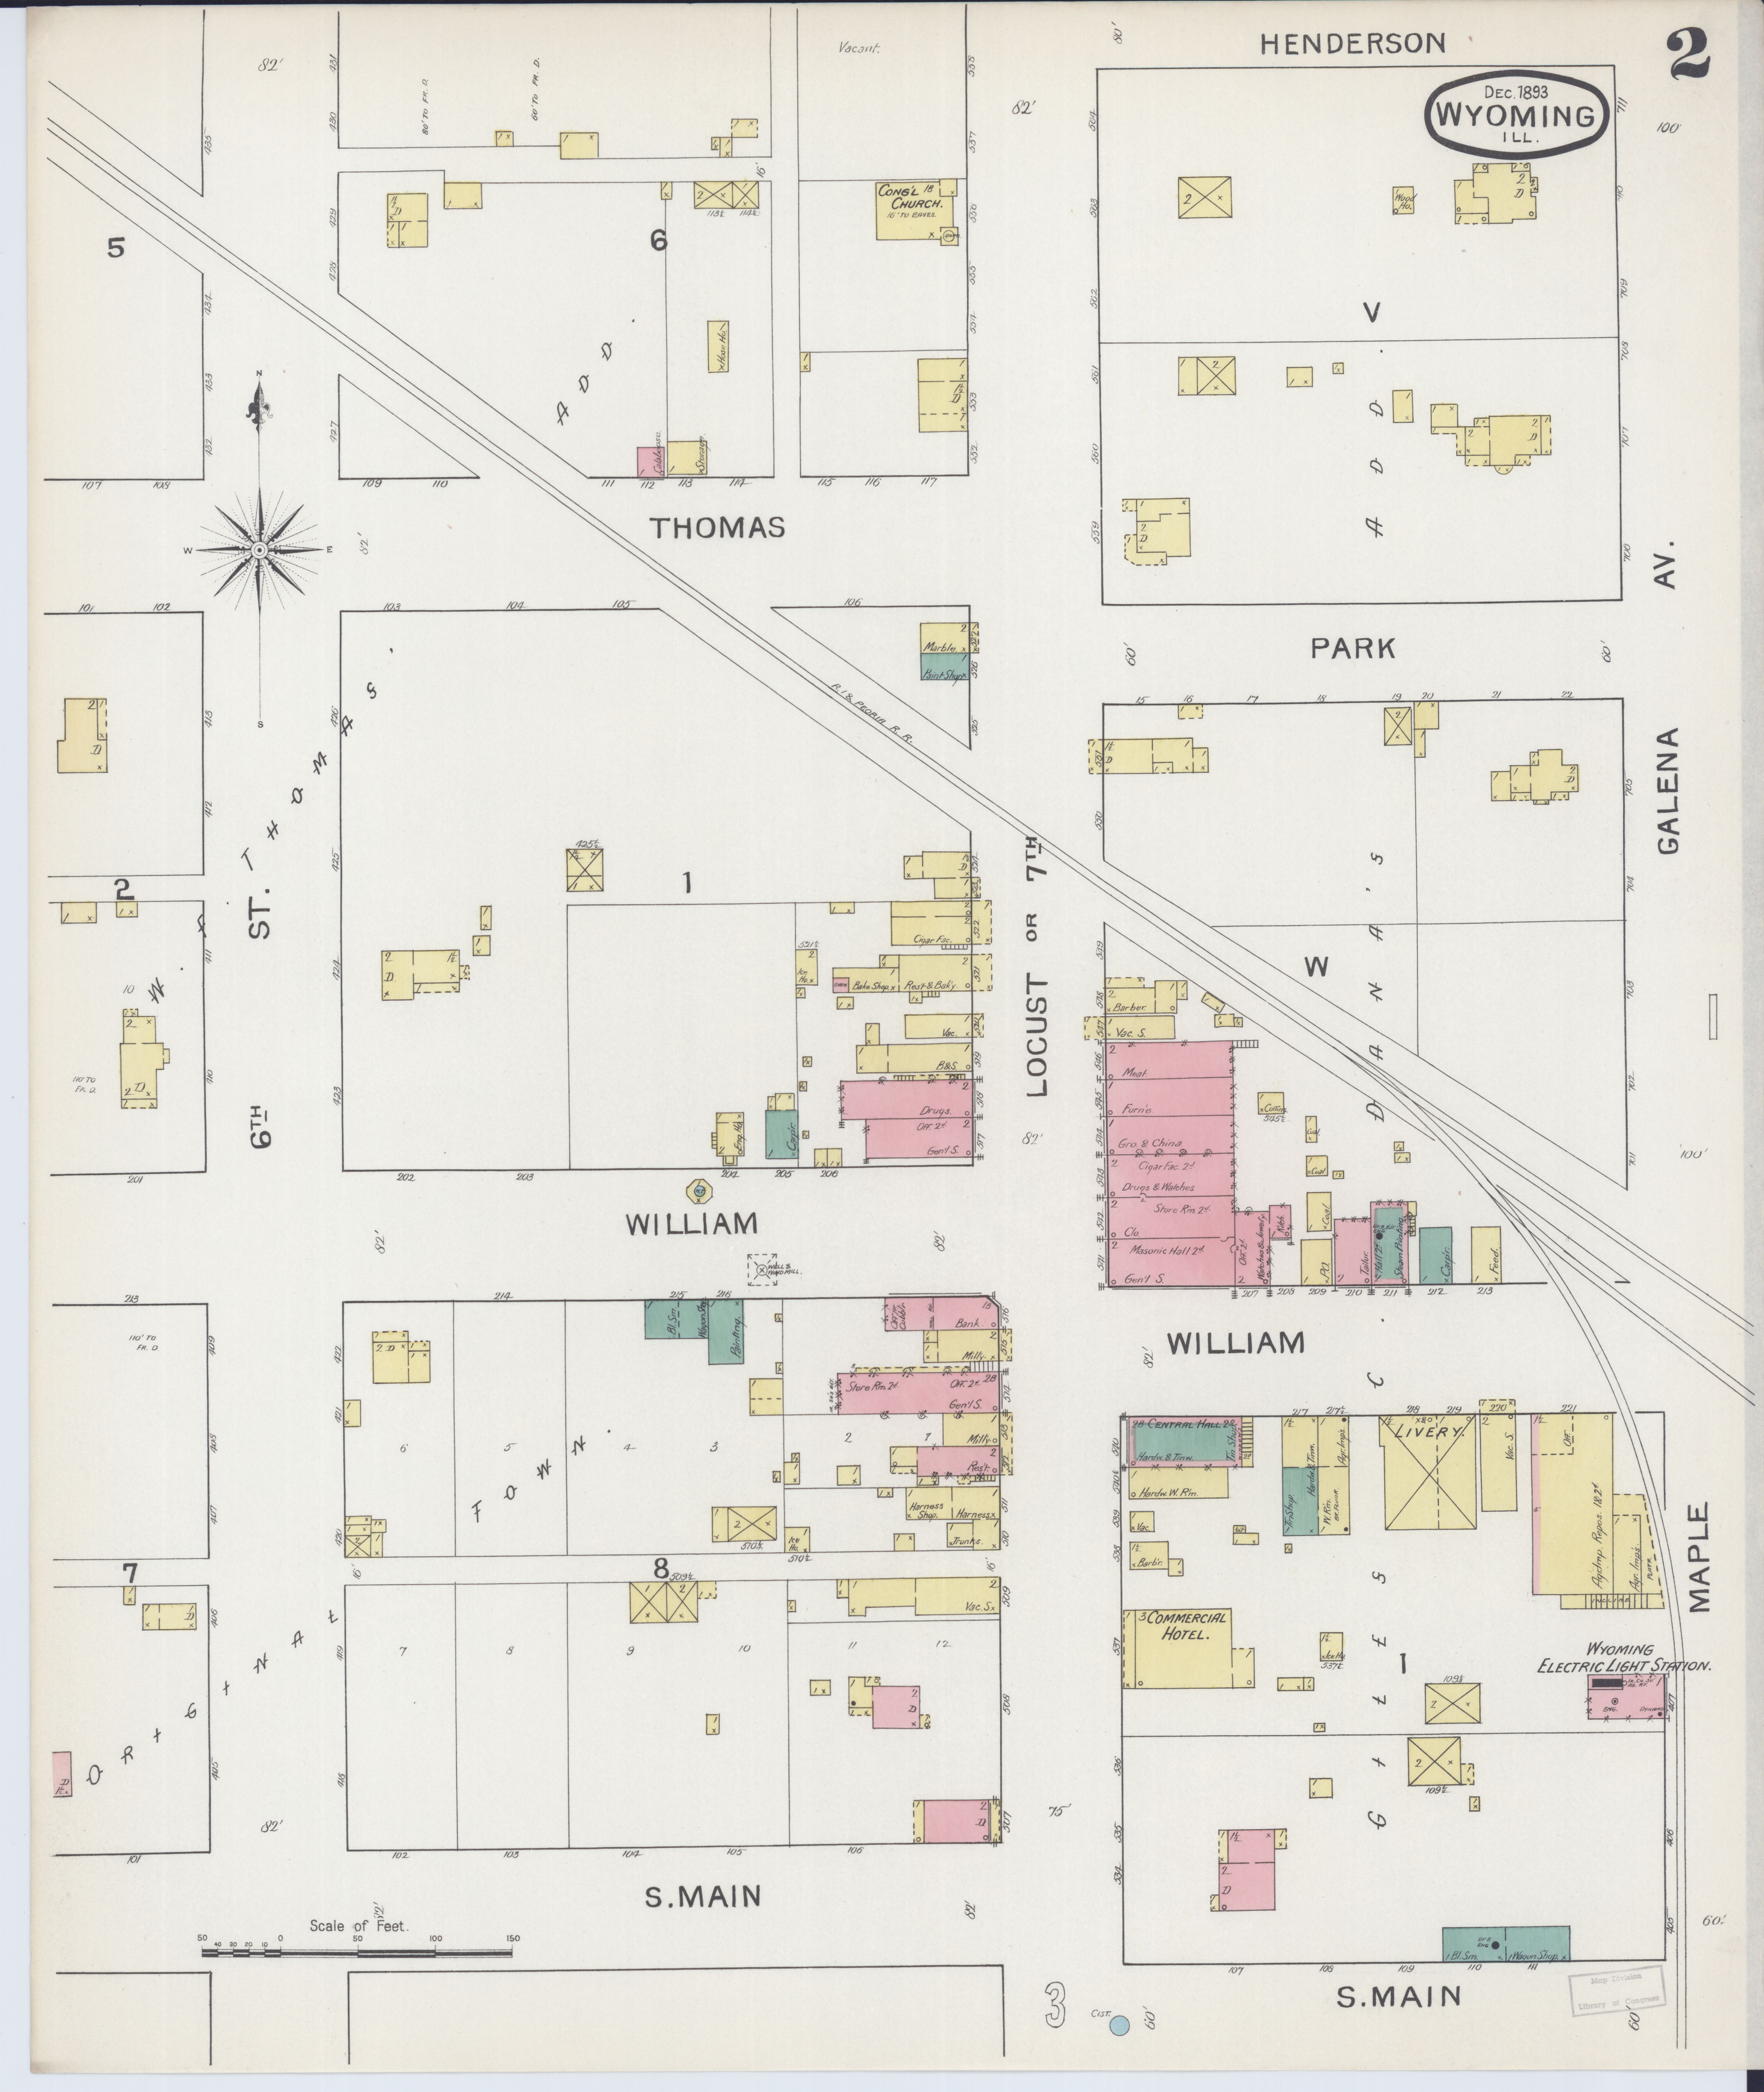 File Sanborn Fire Insurance Map From Wyoming Stark County Illinois